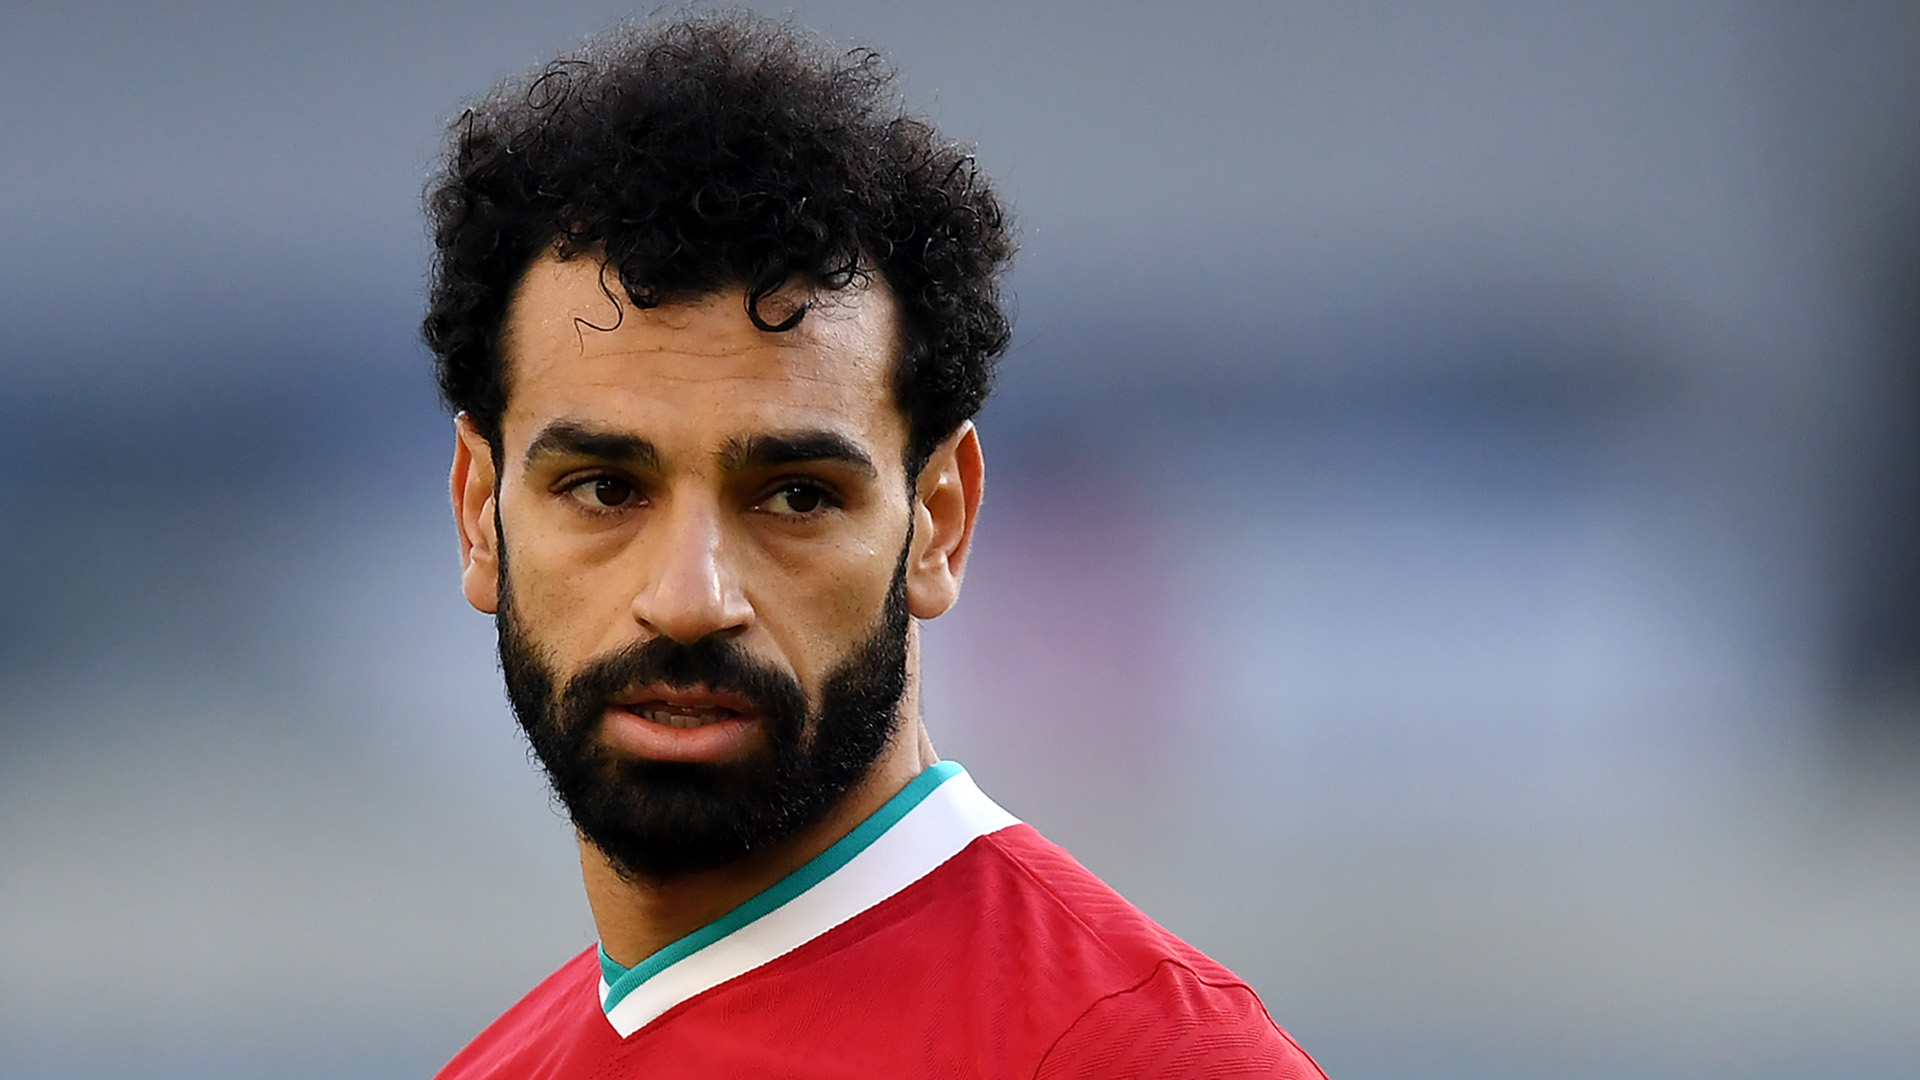 Liverpool boss Klopp explains why Salah played full 90 minutes in dead rubber against Midtjylland